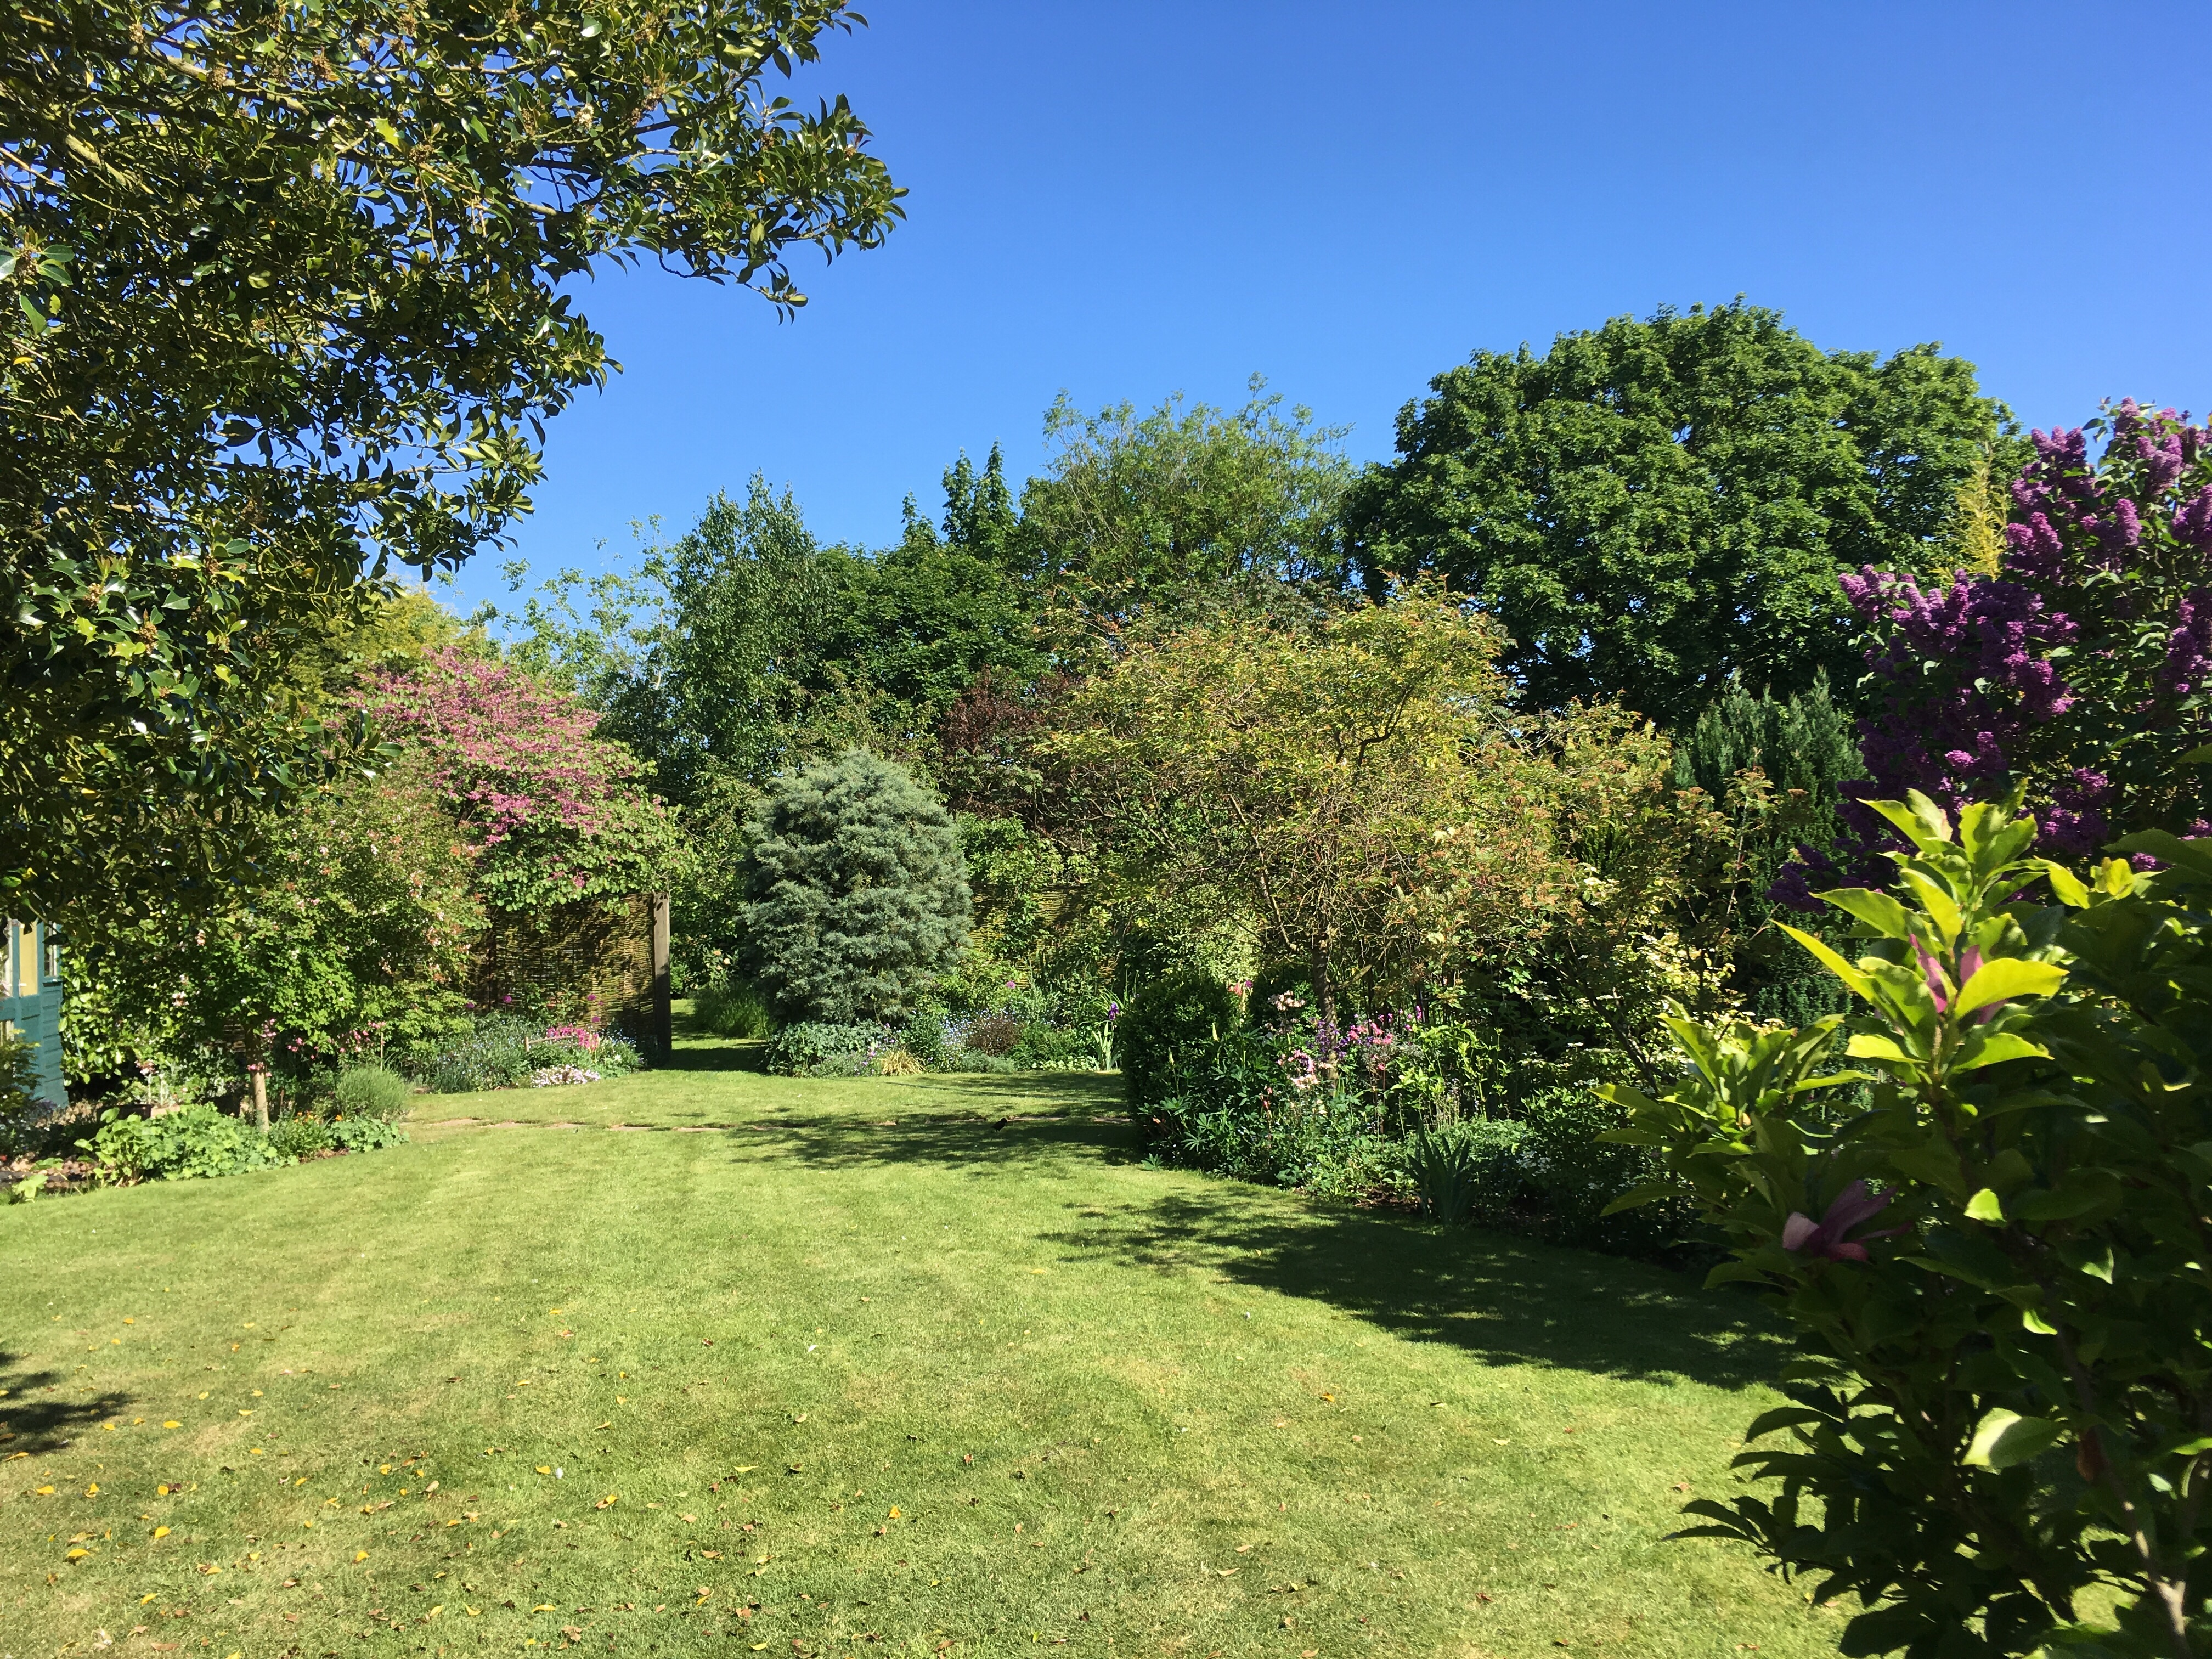 Our Garden At 14 Lynn Road Will Be Open For Charity In The National Gardens  Society (u201cYellow Booku201d) Scheme On Sunday 10th June From 2 6pm, Along With  Four ...